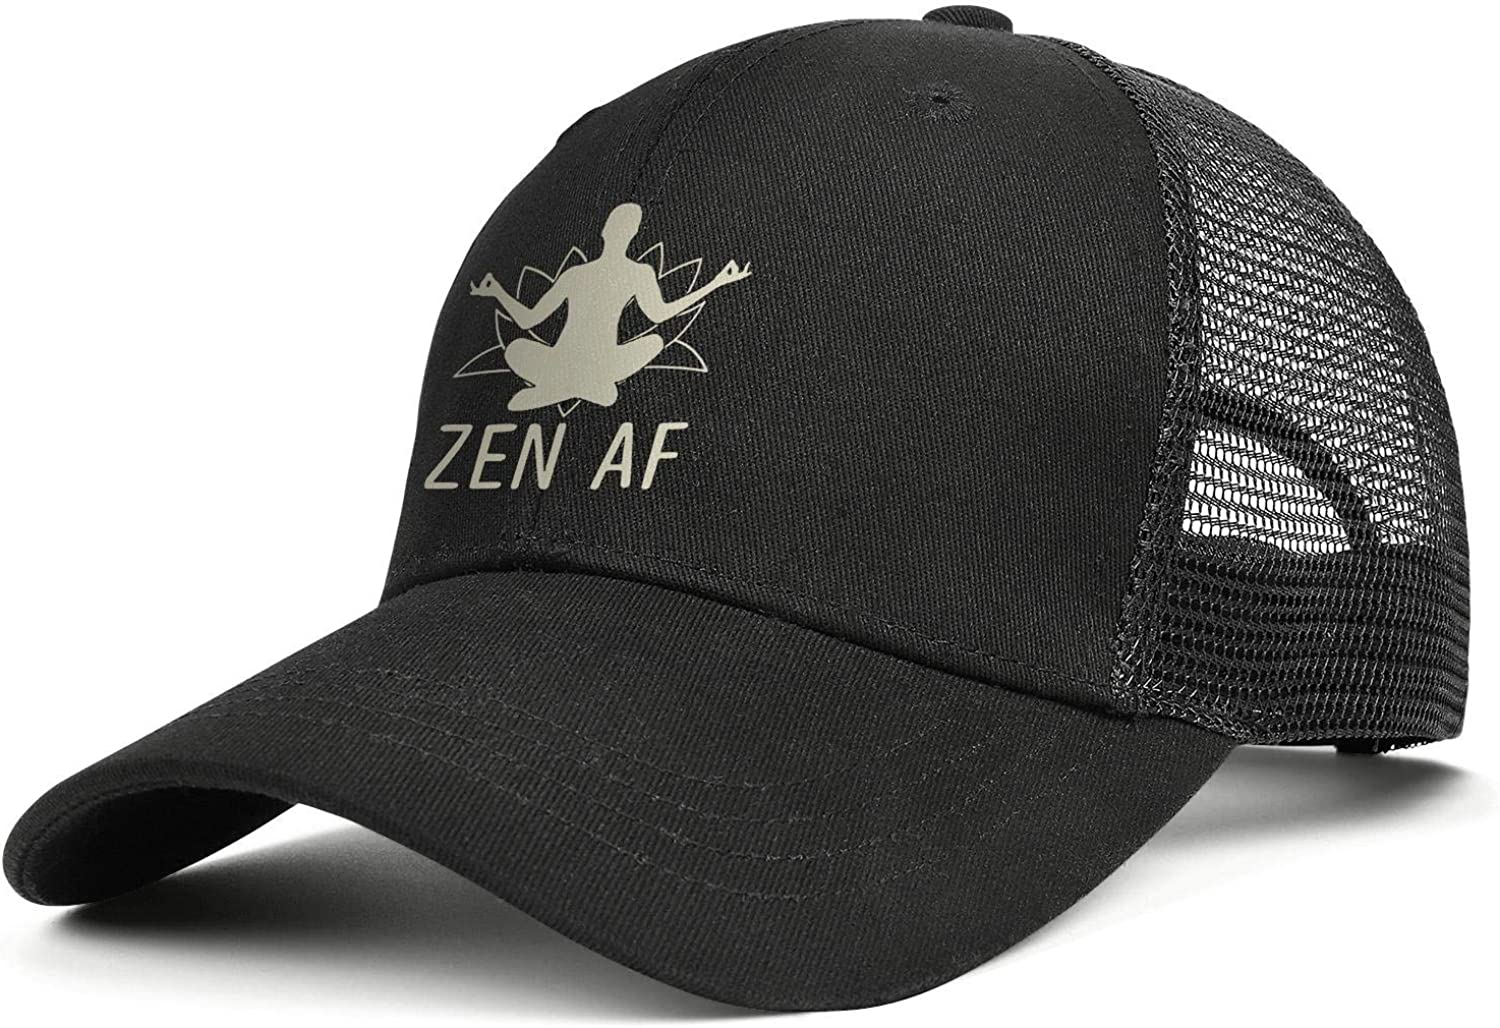 TONGZIRT Gym Mesh Dad Hats Cotton Mens Baseball Caps Unisex Snapback for Women Trucker Hats Fashion Strapback